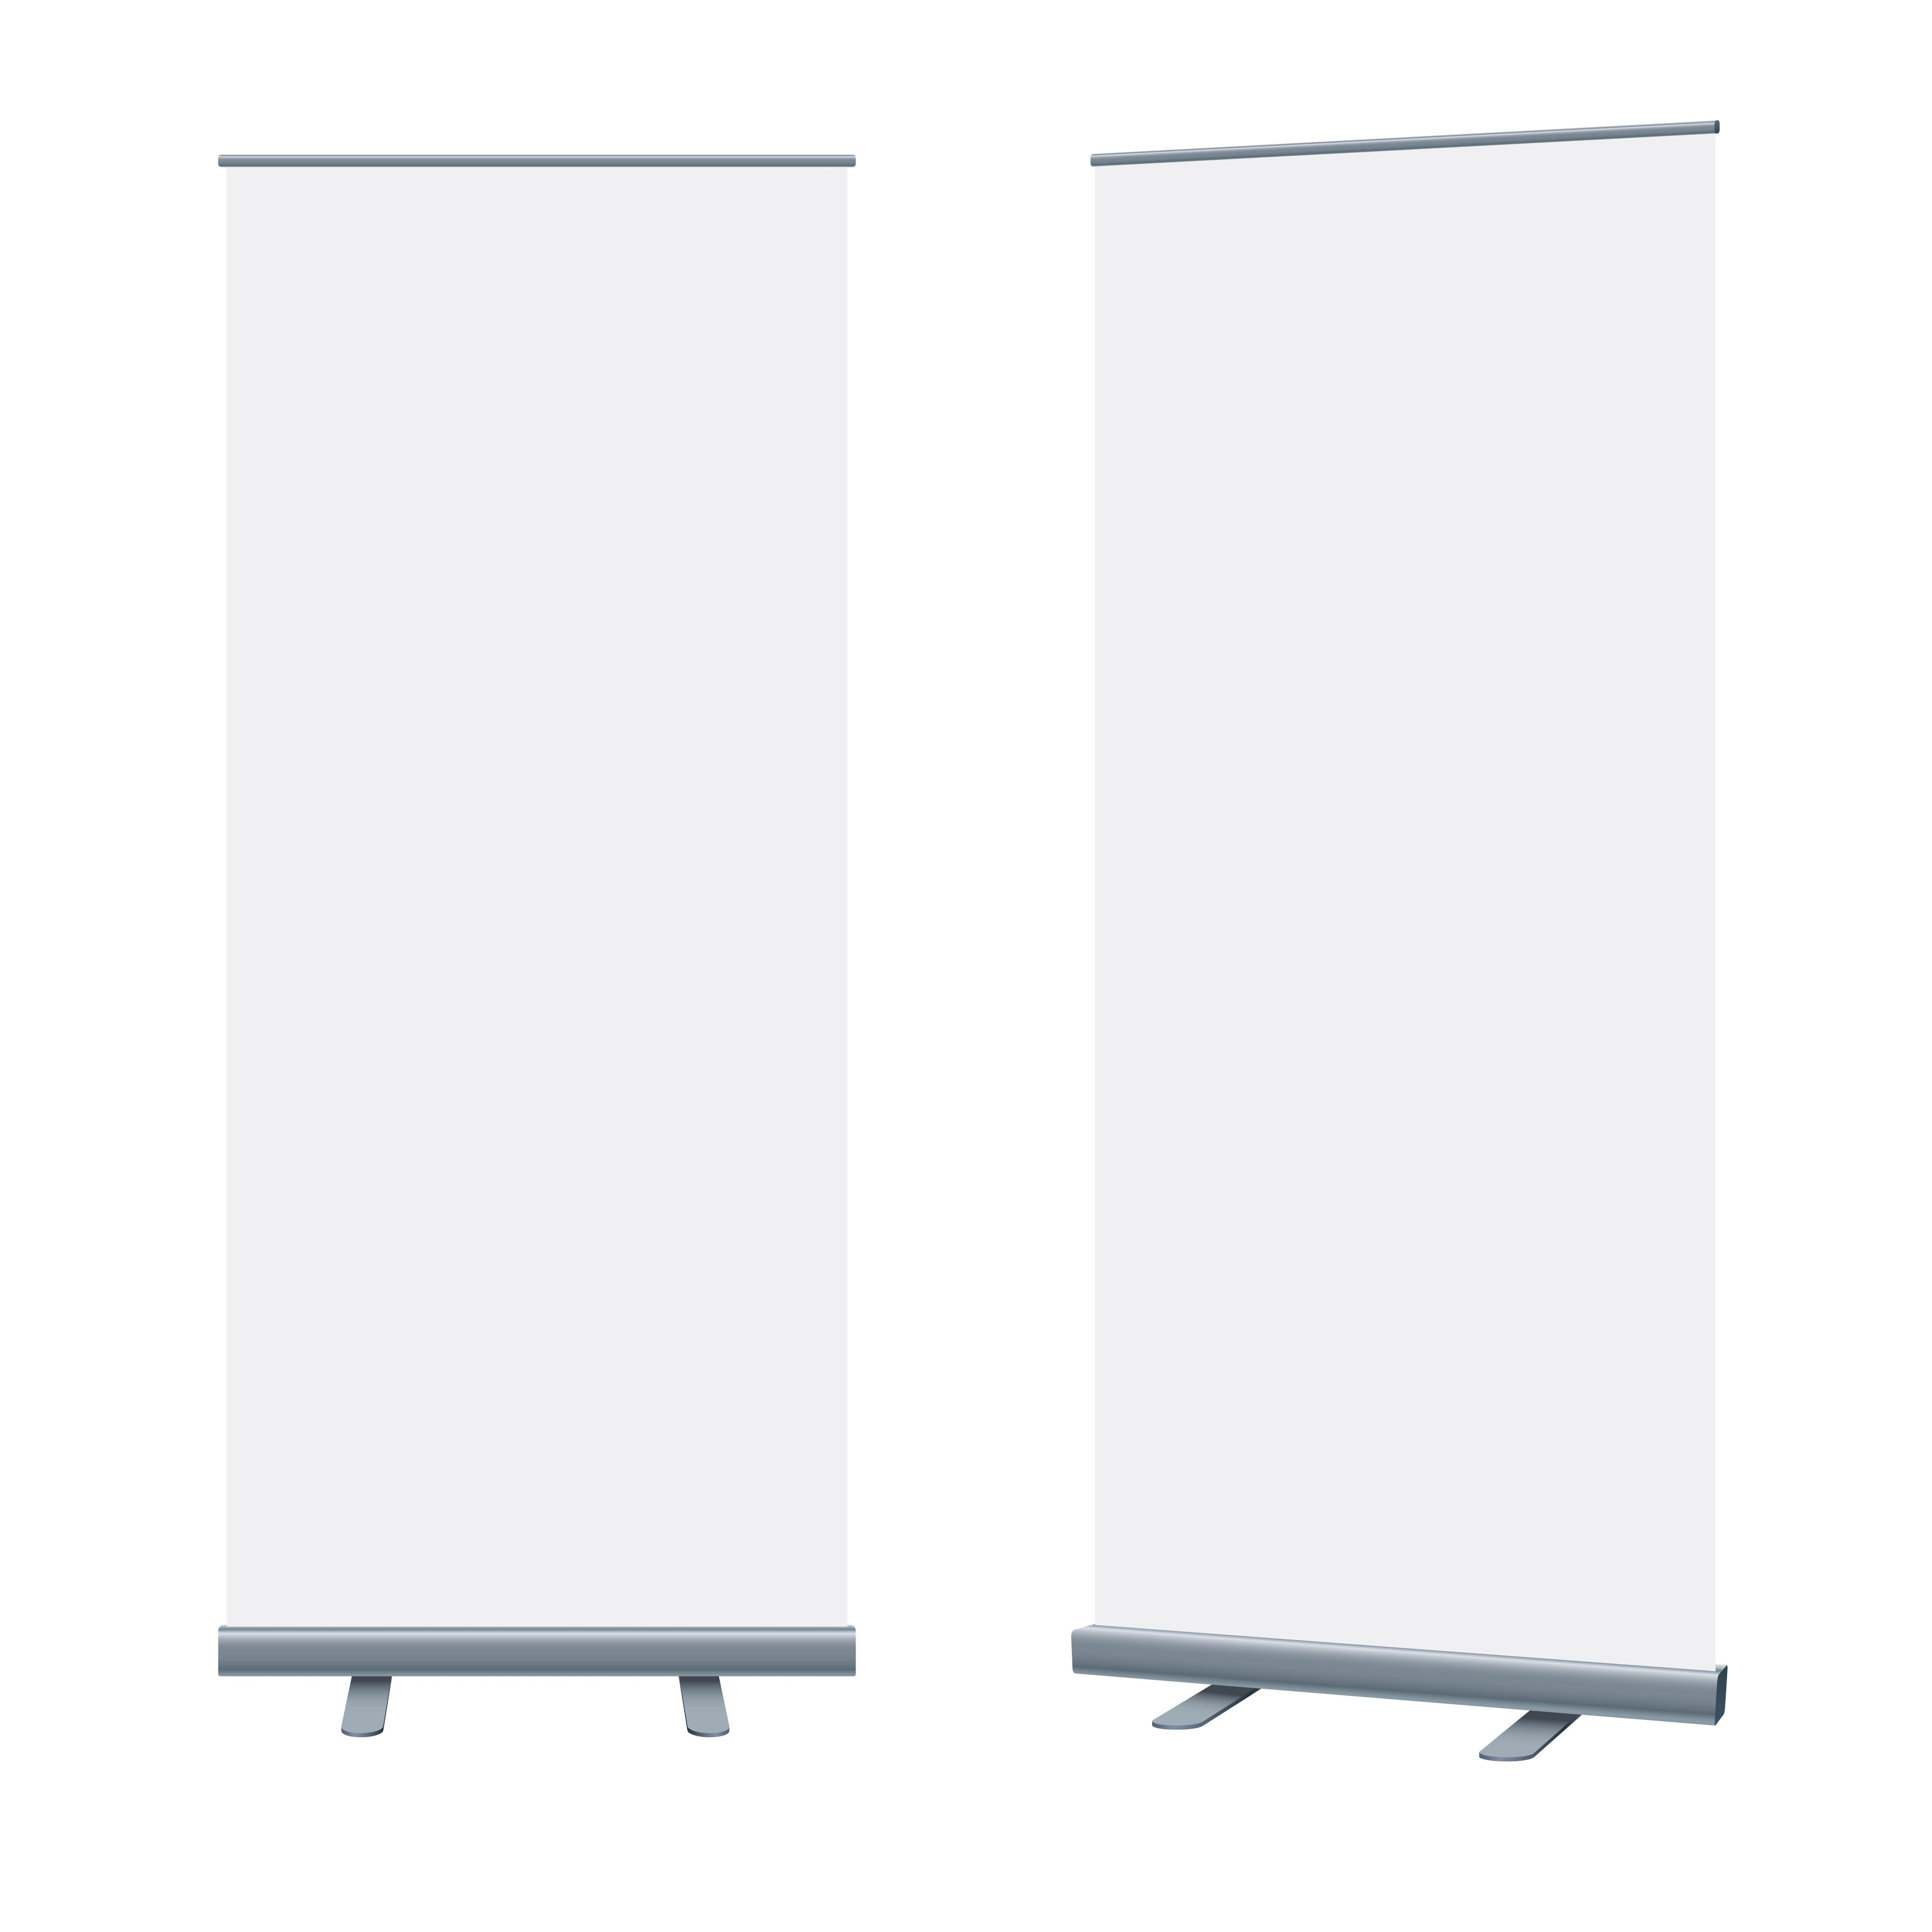 pull up banners blank temple pinterest banners mockup and